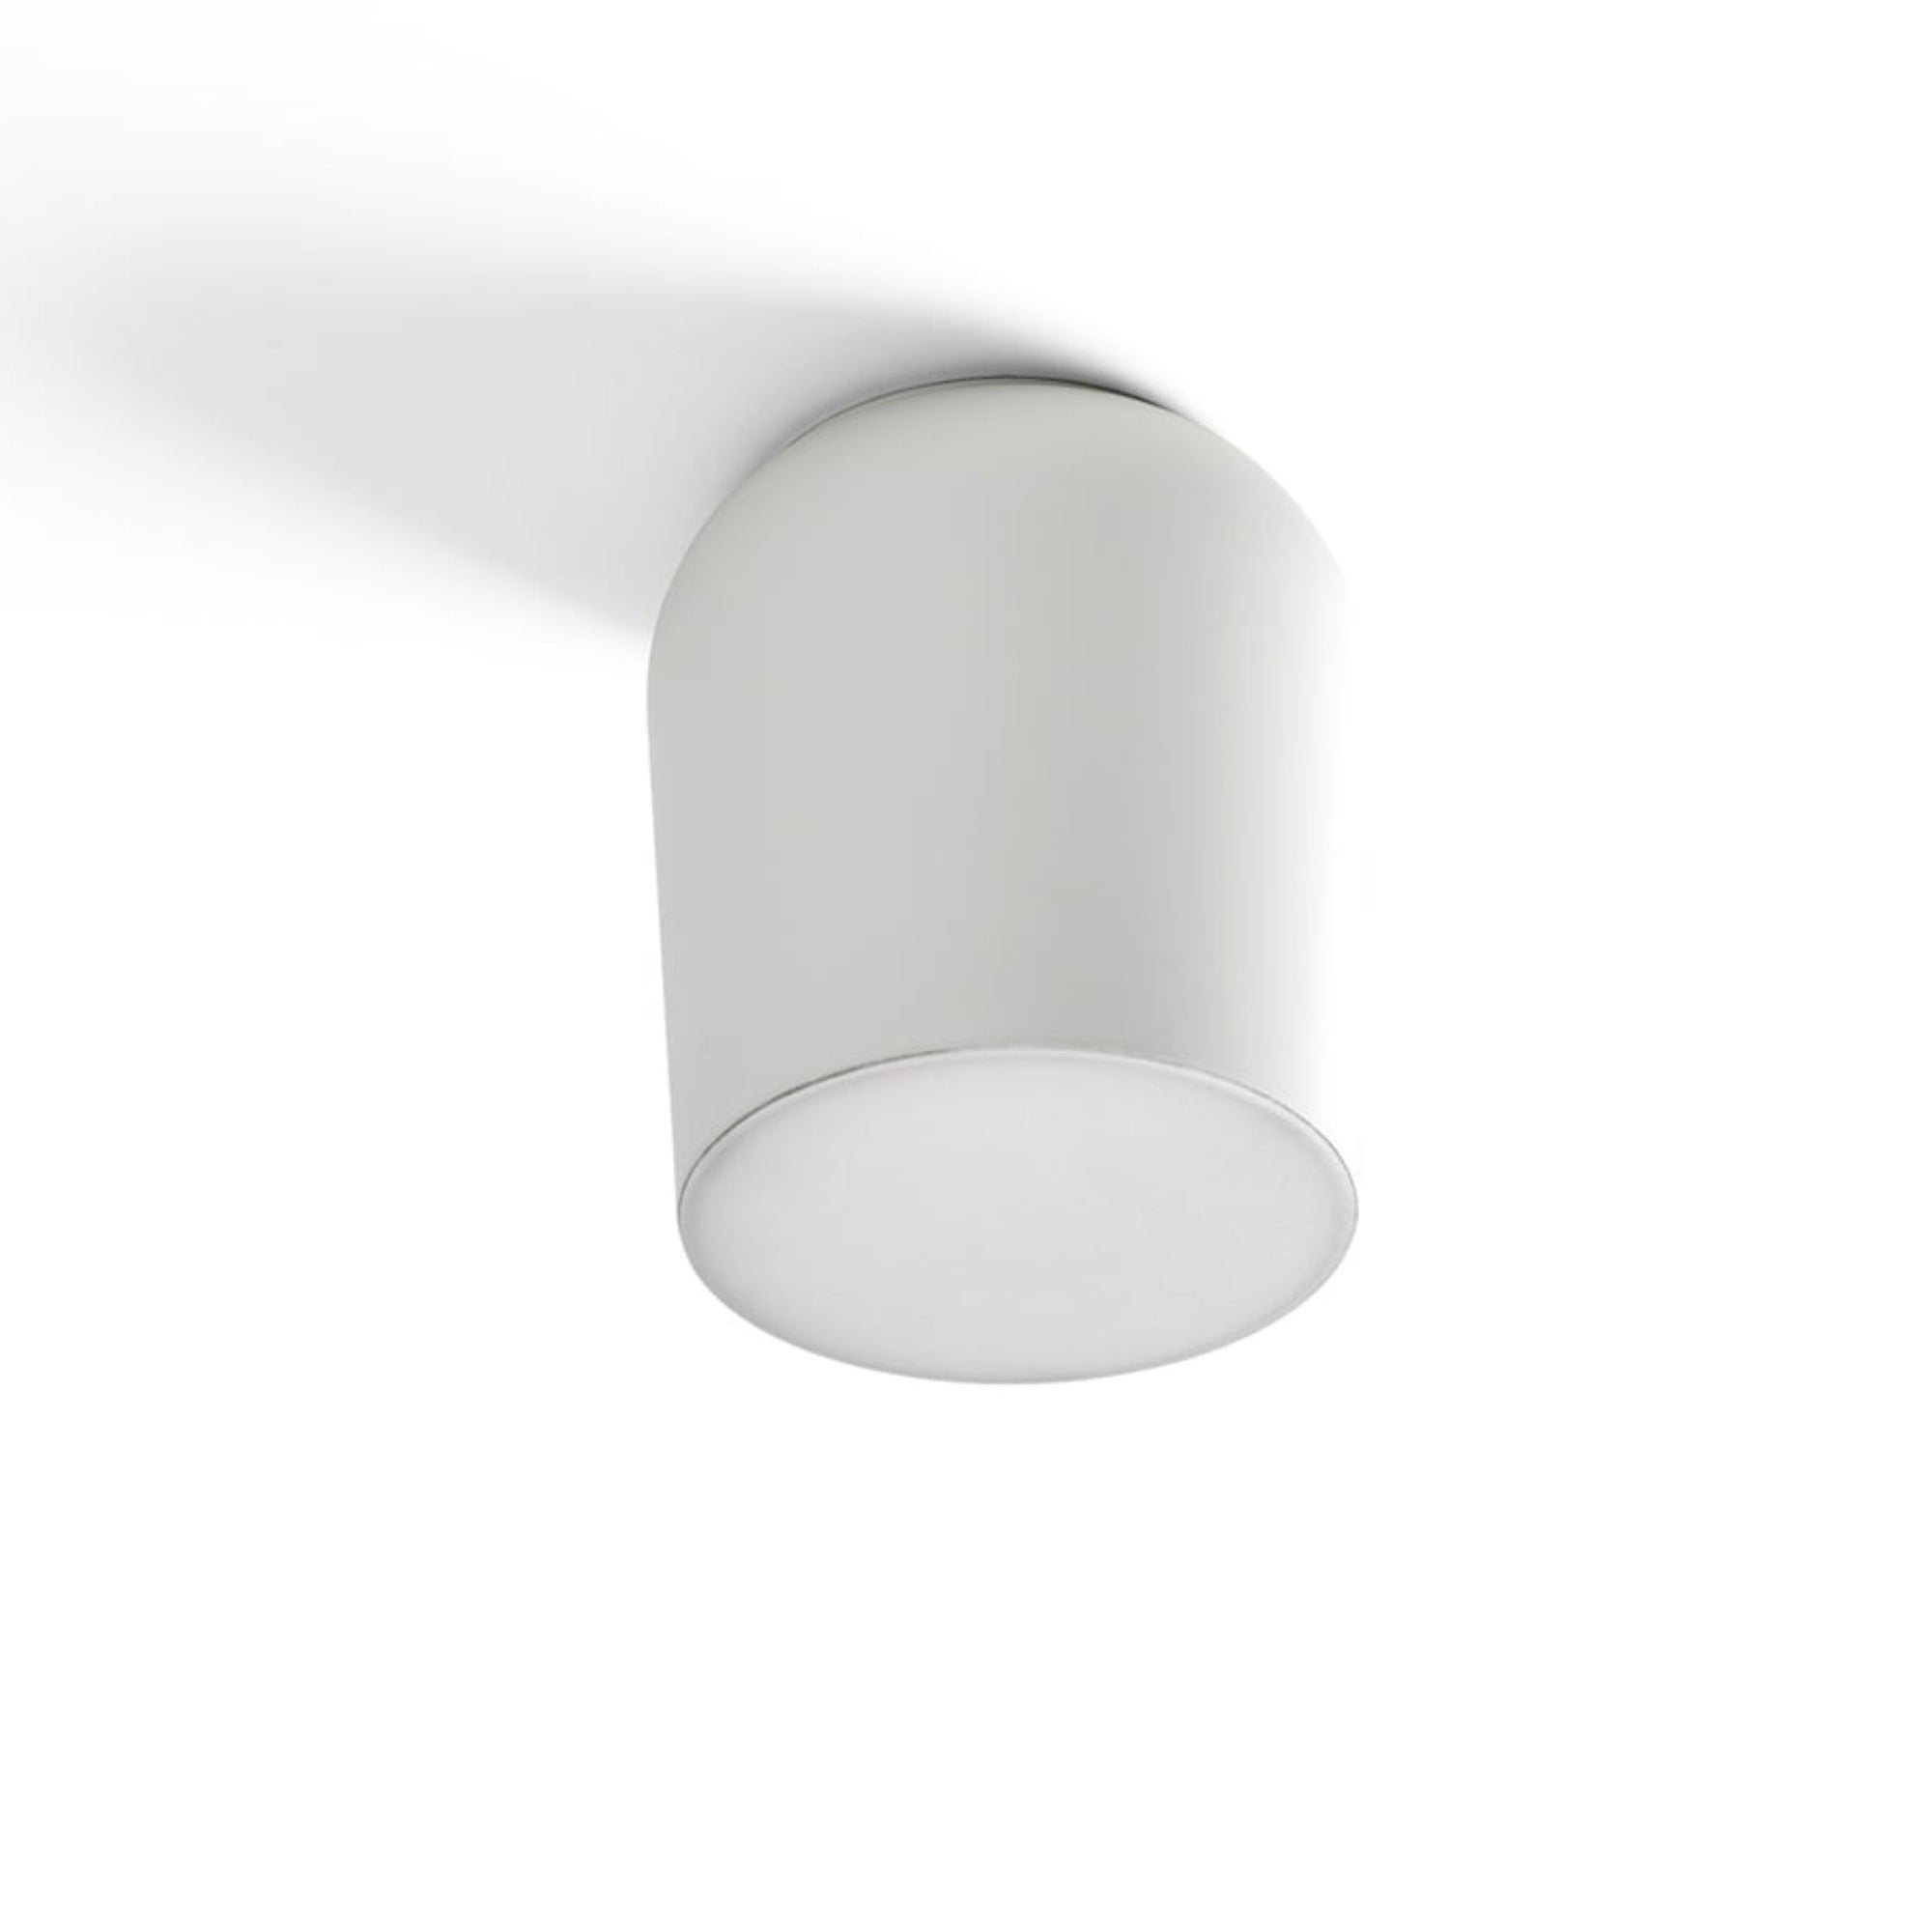 &Tradition JH10 Passepartout ceiling/ wall lamp, matt white